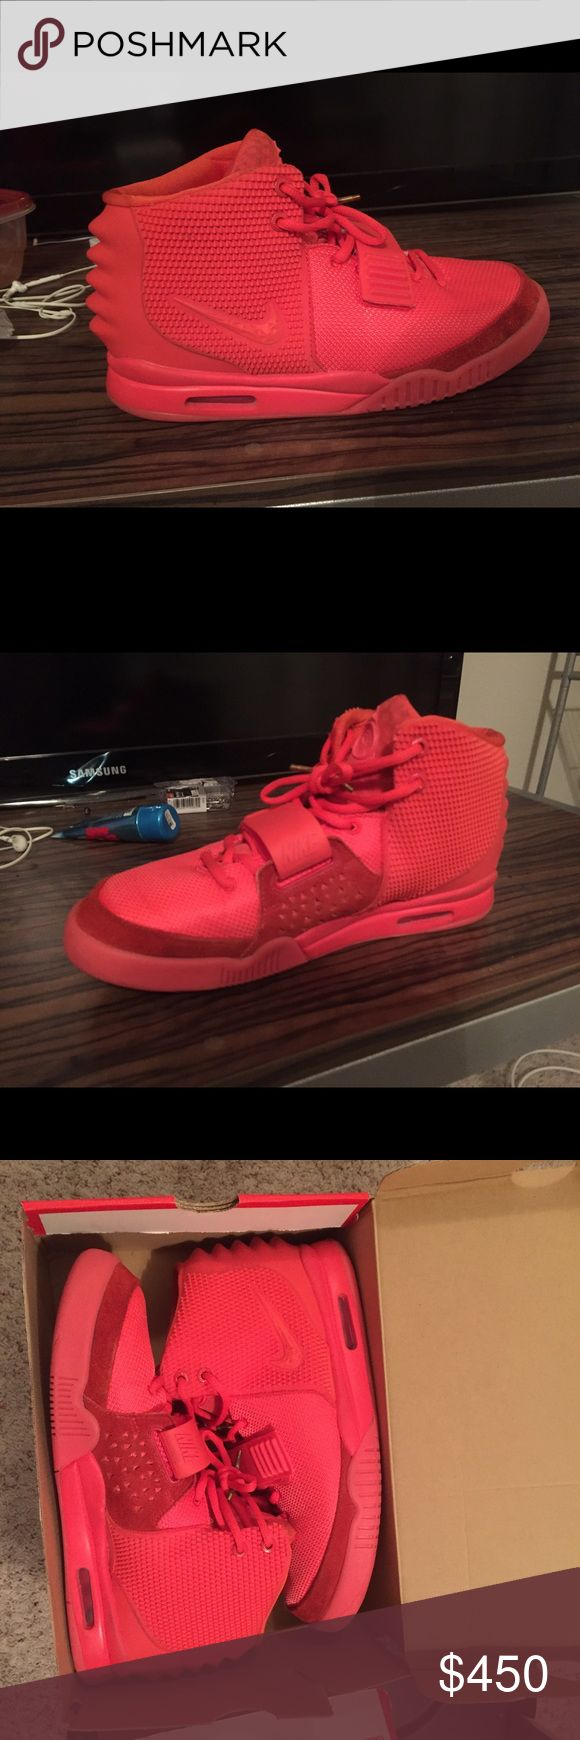 Red October Yeezys All red. No gold tips for laces. Worn only a couple of times. Yeezy Shoes Sneakers